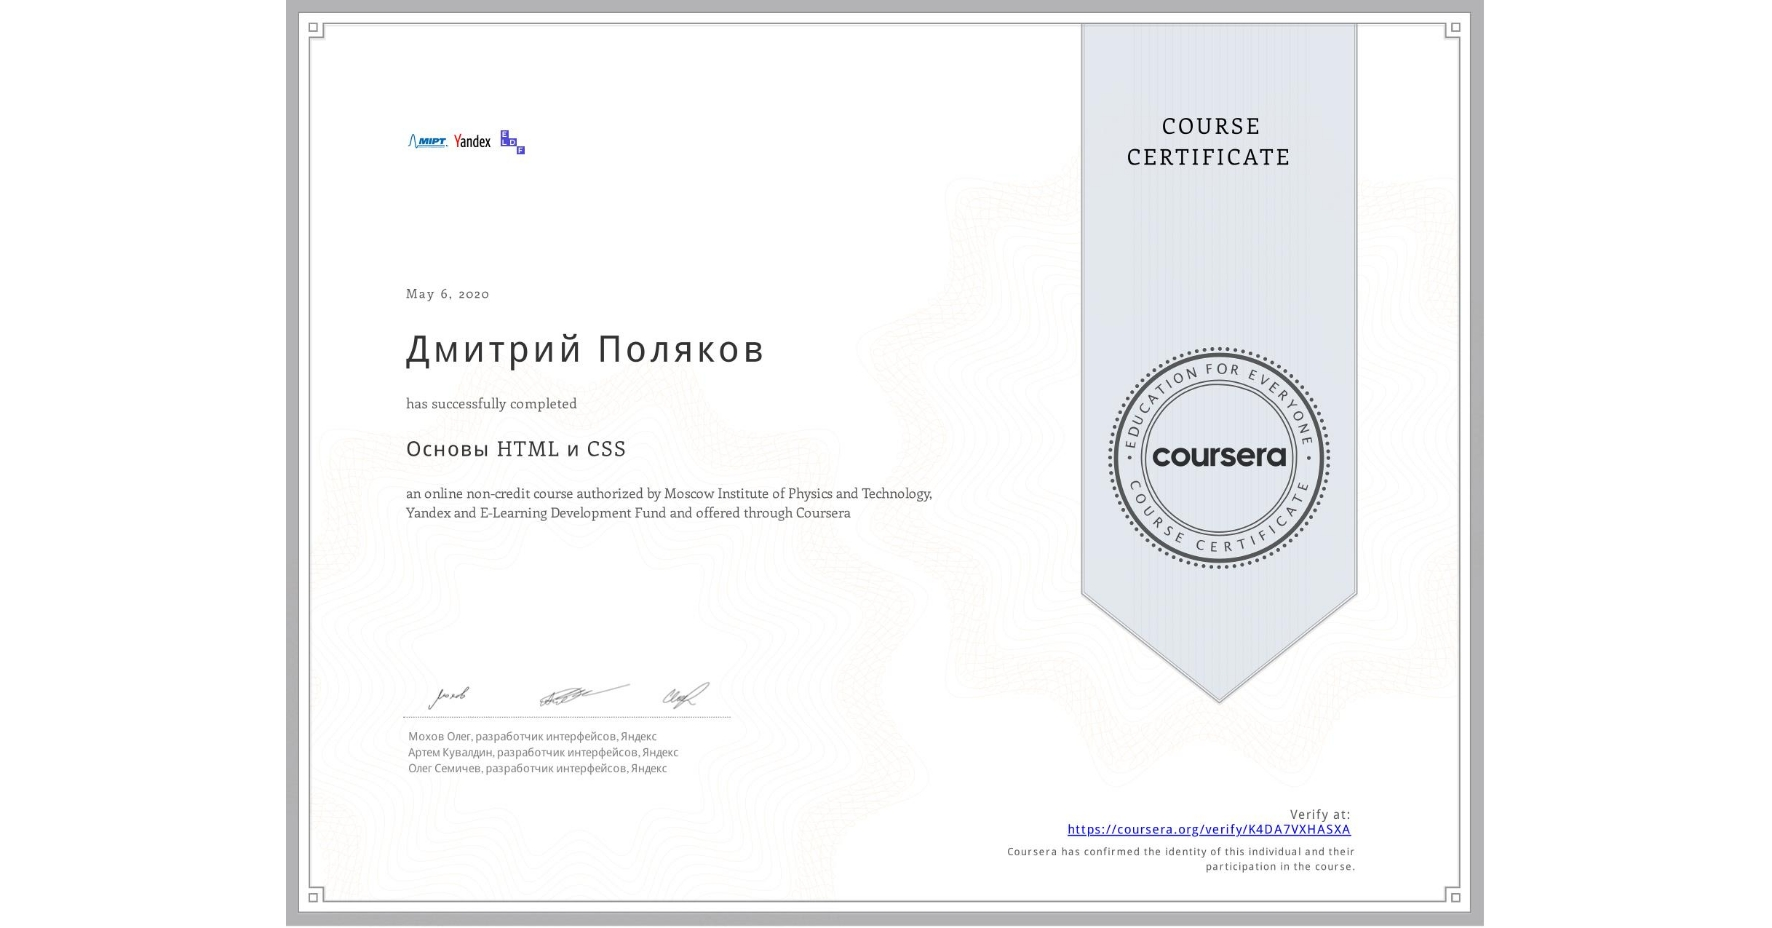 View certificate for Дмитрий Поляков, Основы HTML и CSS, an online non-credit course authorized by Moscow Institute of Physics and Technology, Yandex & E-Learning Development Fund and offered through Coursera